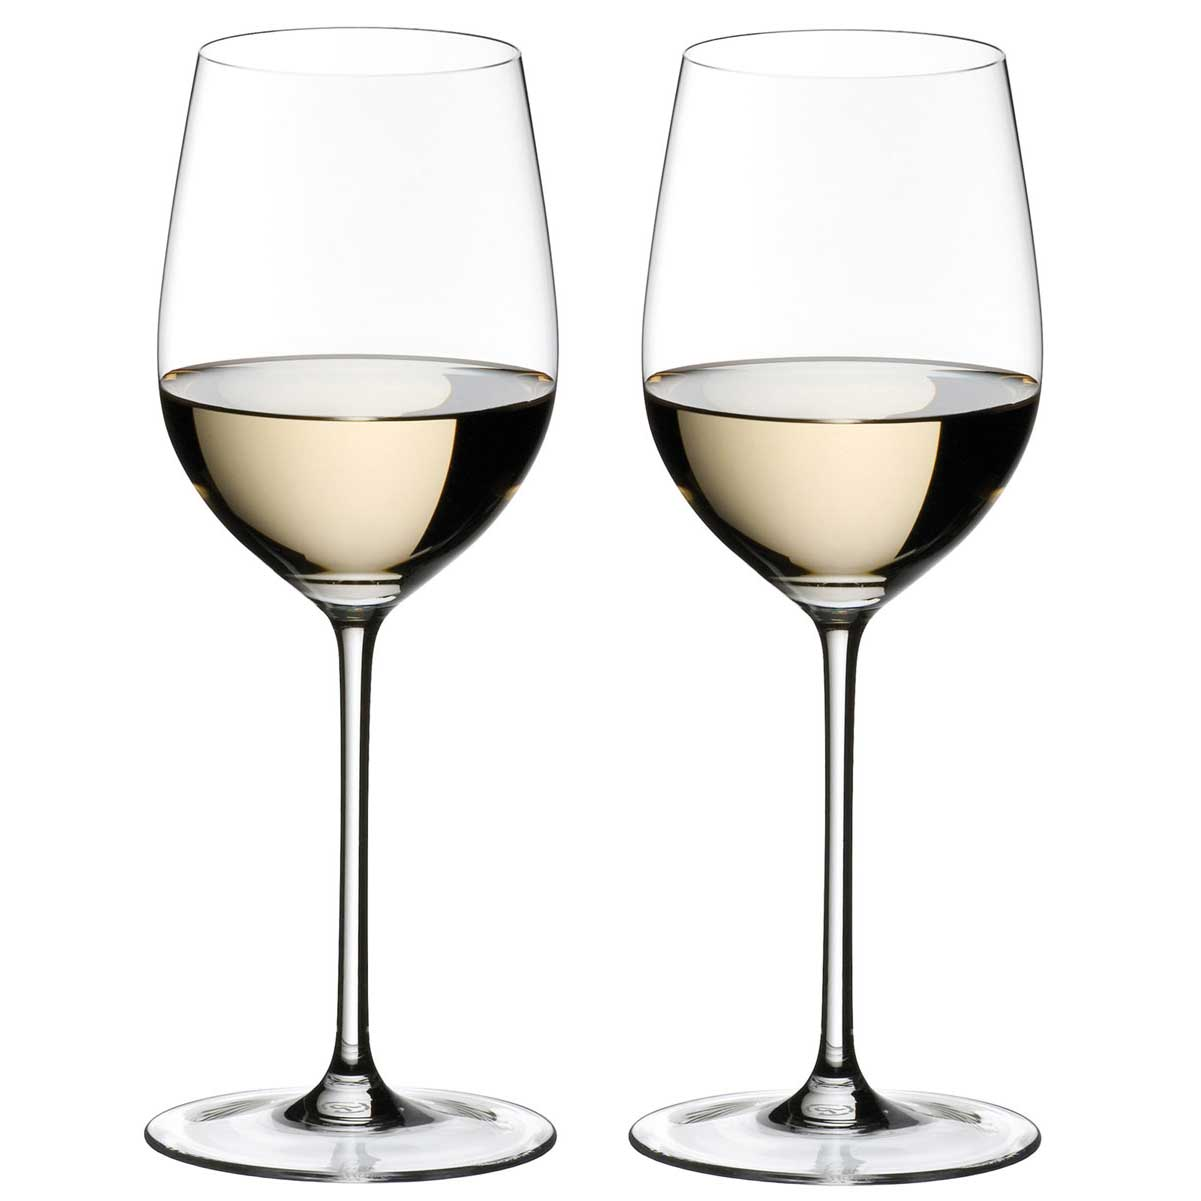 2440/0 Chablis - Chardonnay - Set of 2 - Click Image to Close